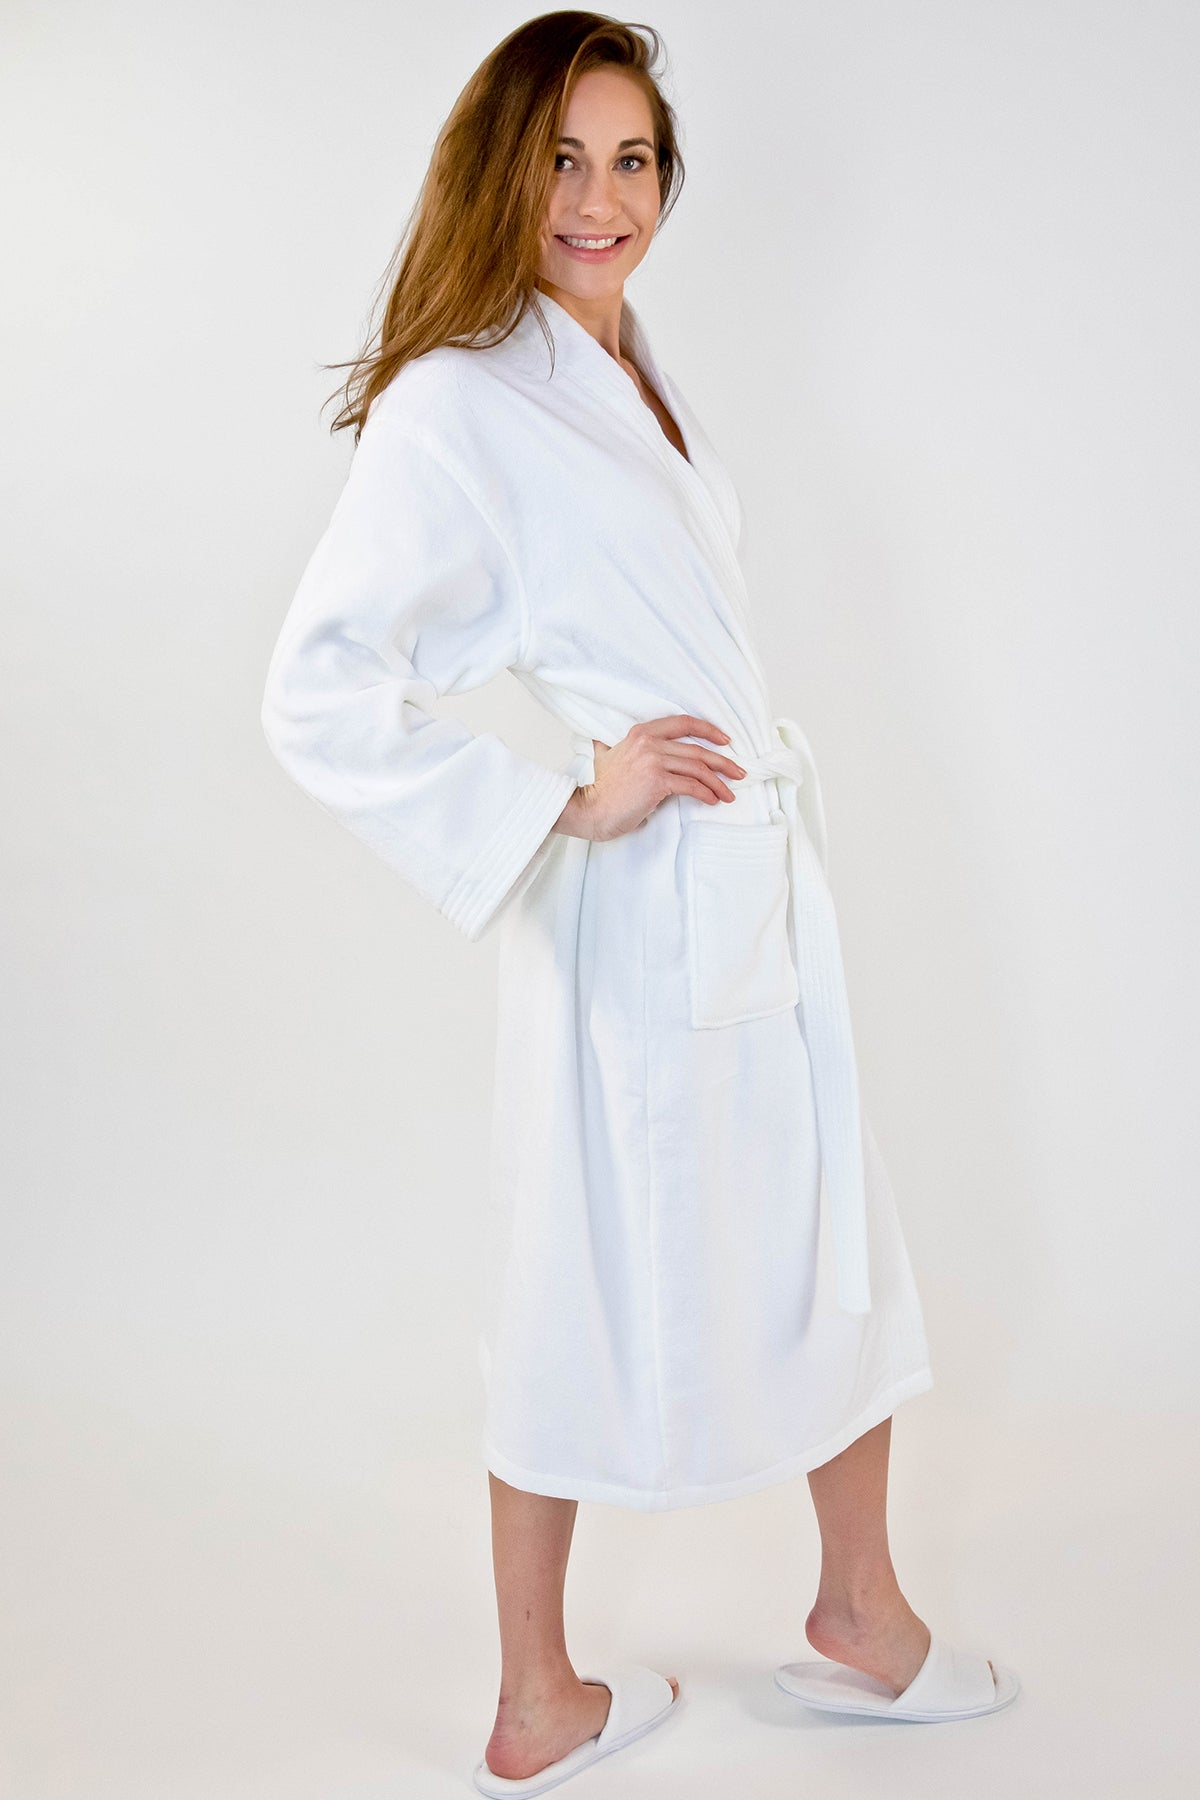 Plush V Neckline Collar Bath Robe White